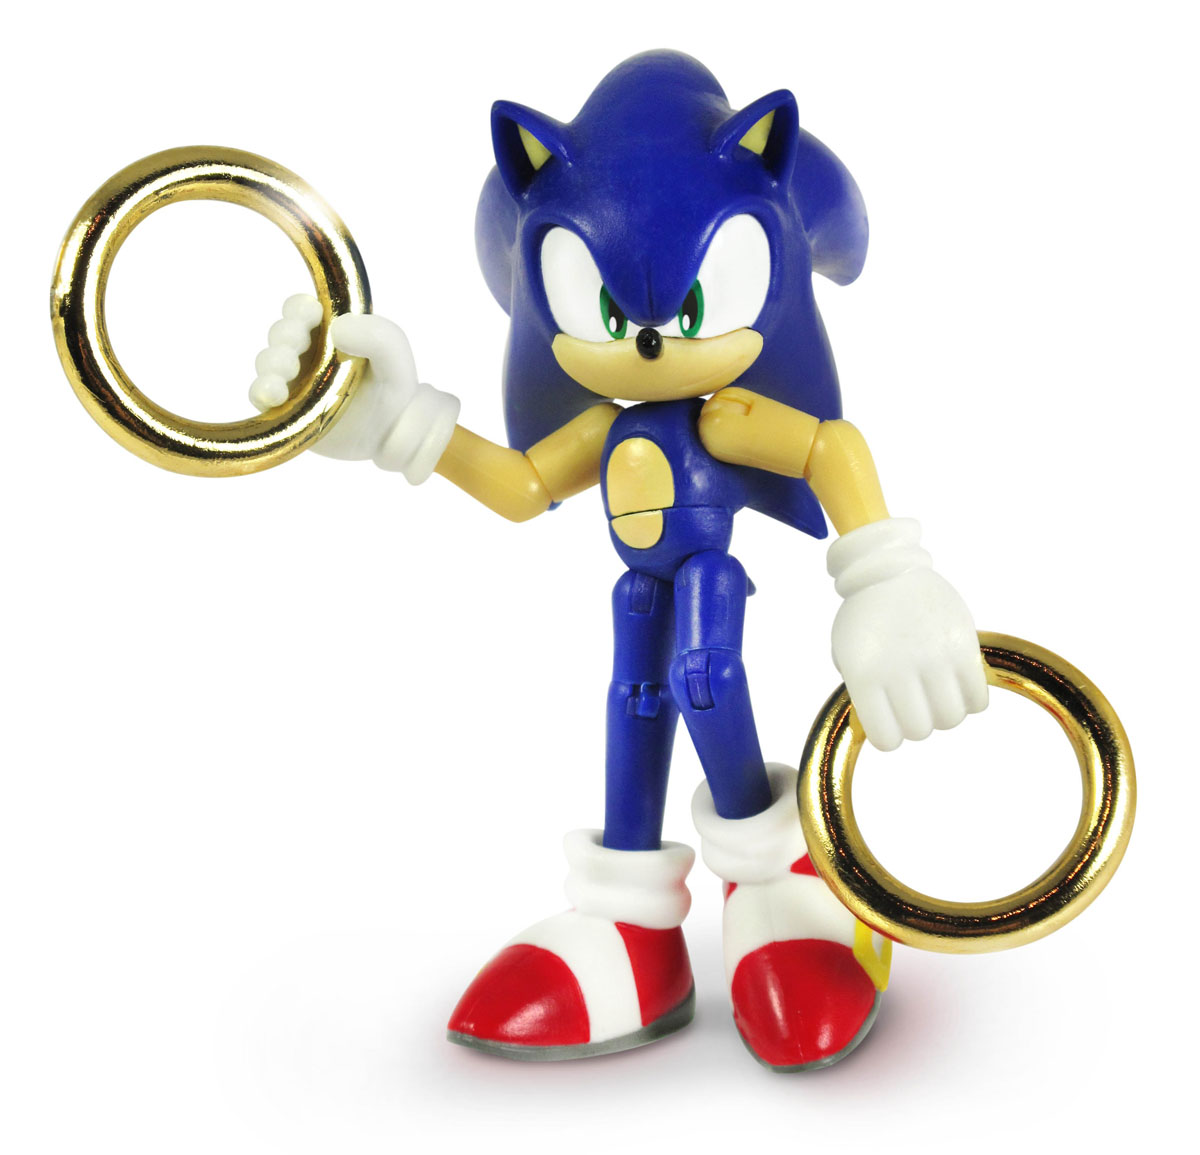 Фигурка Sonic Sonic with Rings, с аксессуарами mathematical modeling for the mcm icm co